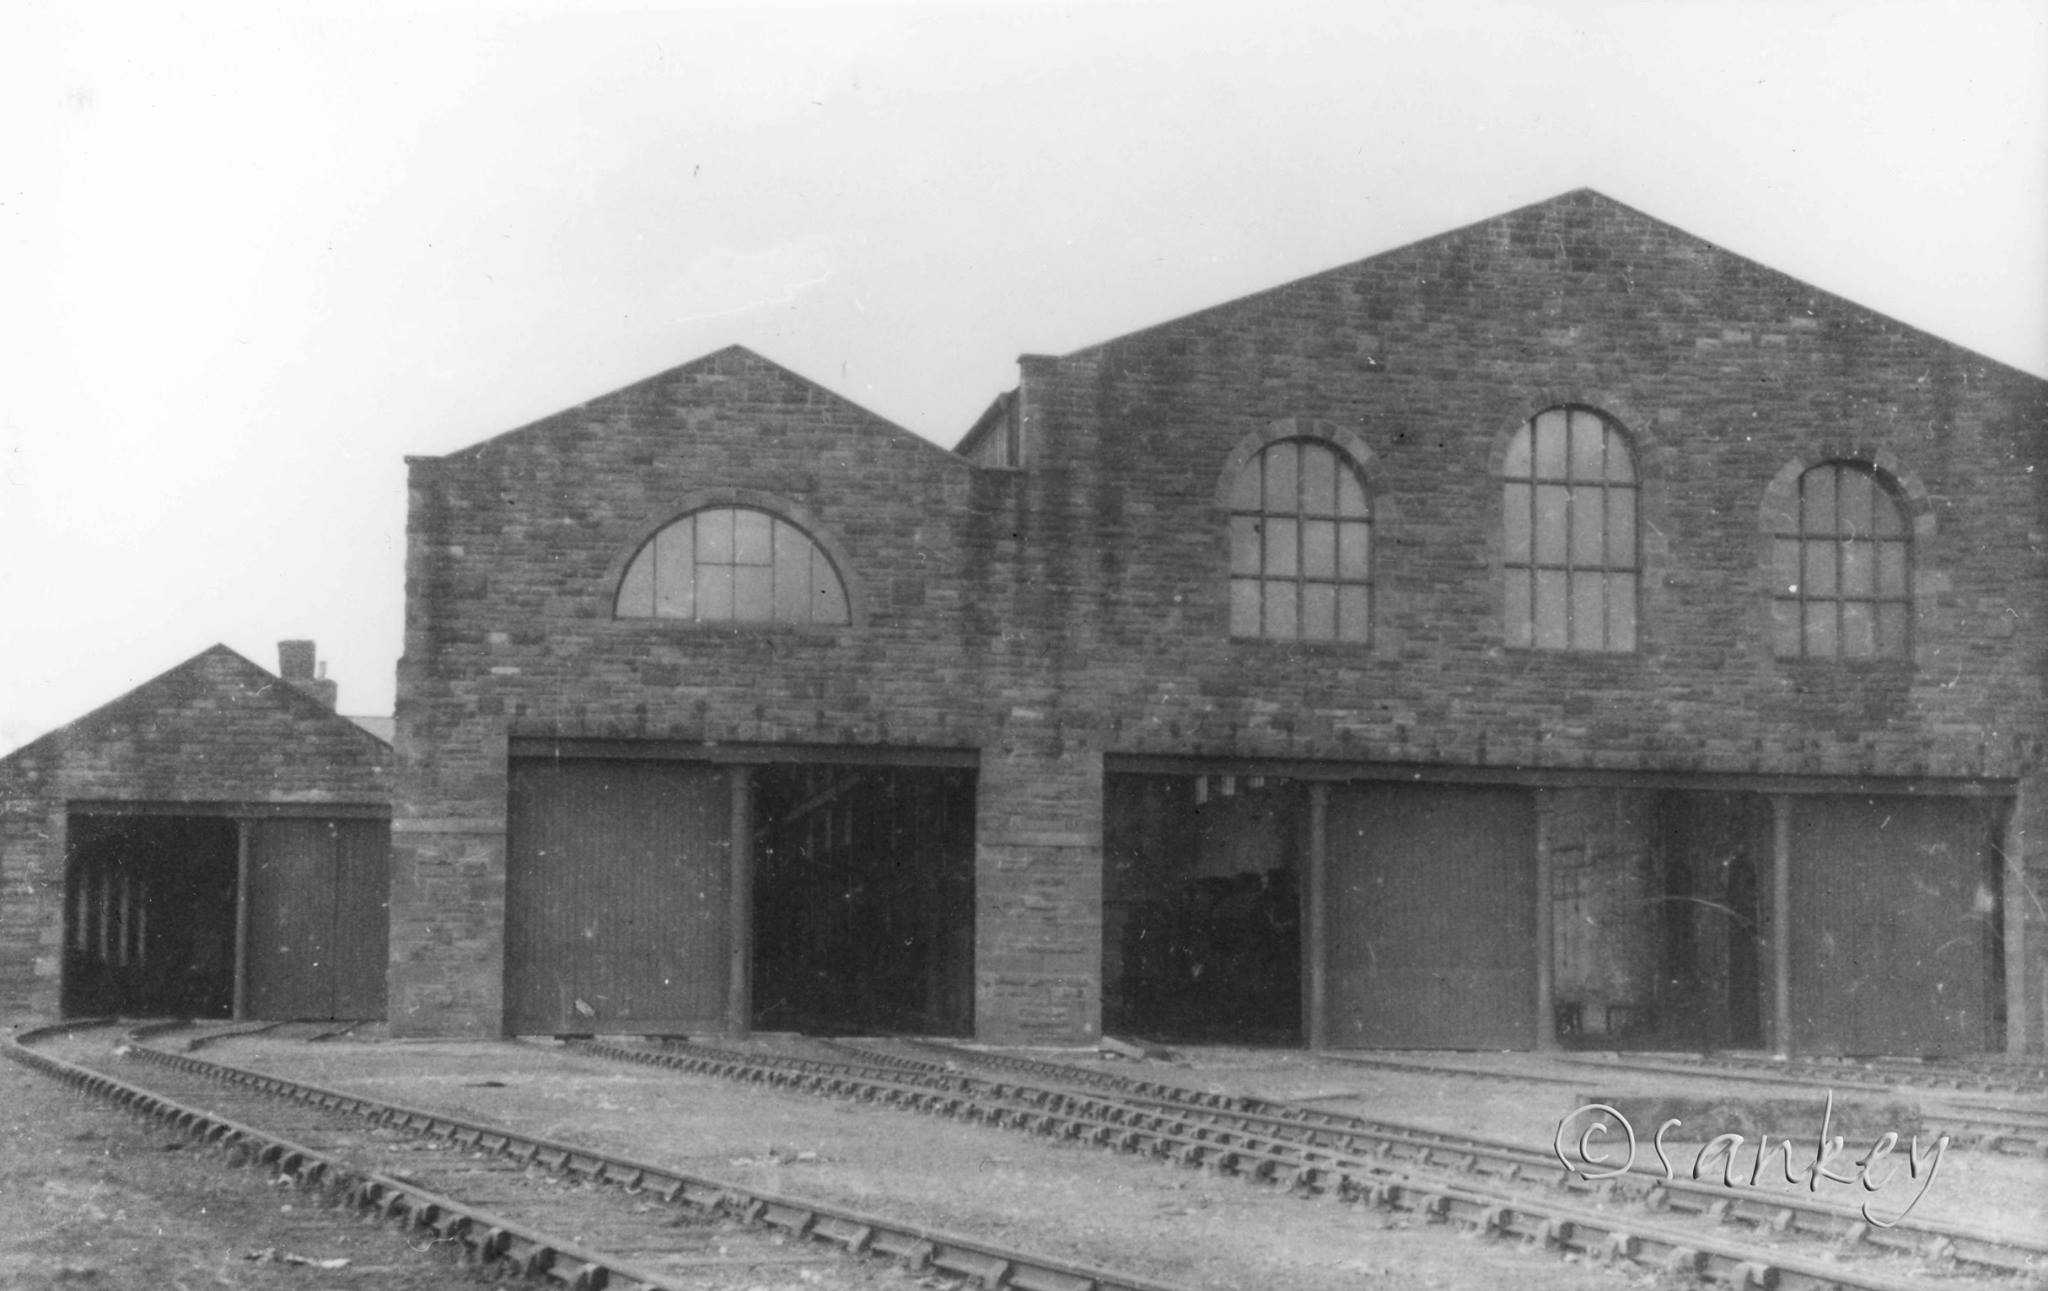 Furness Railway Works Barrow